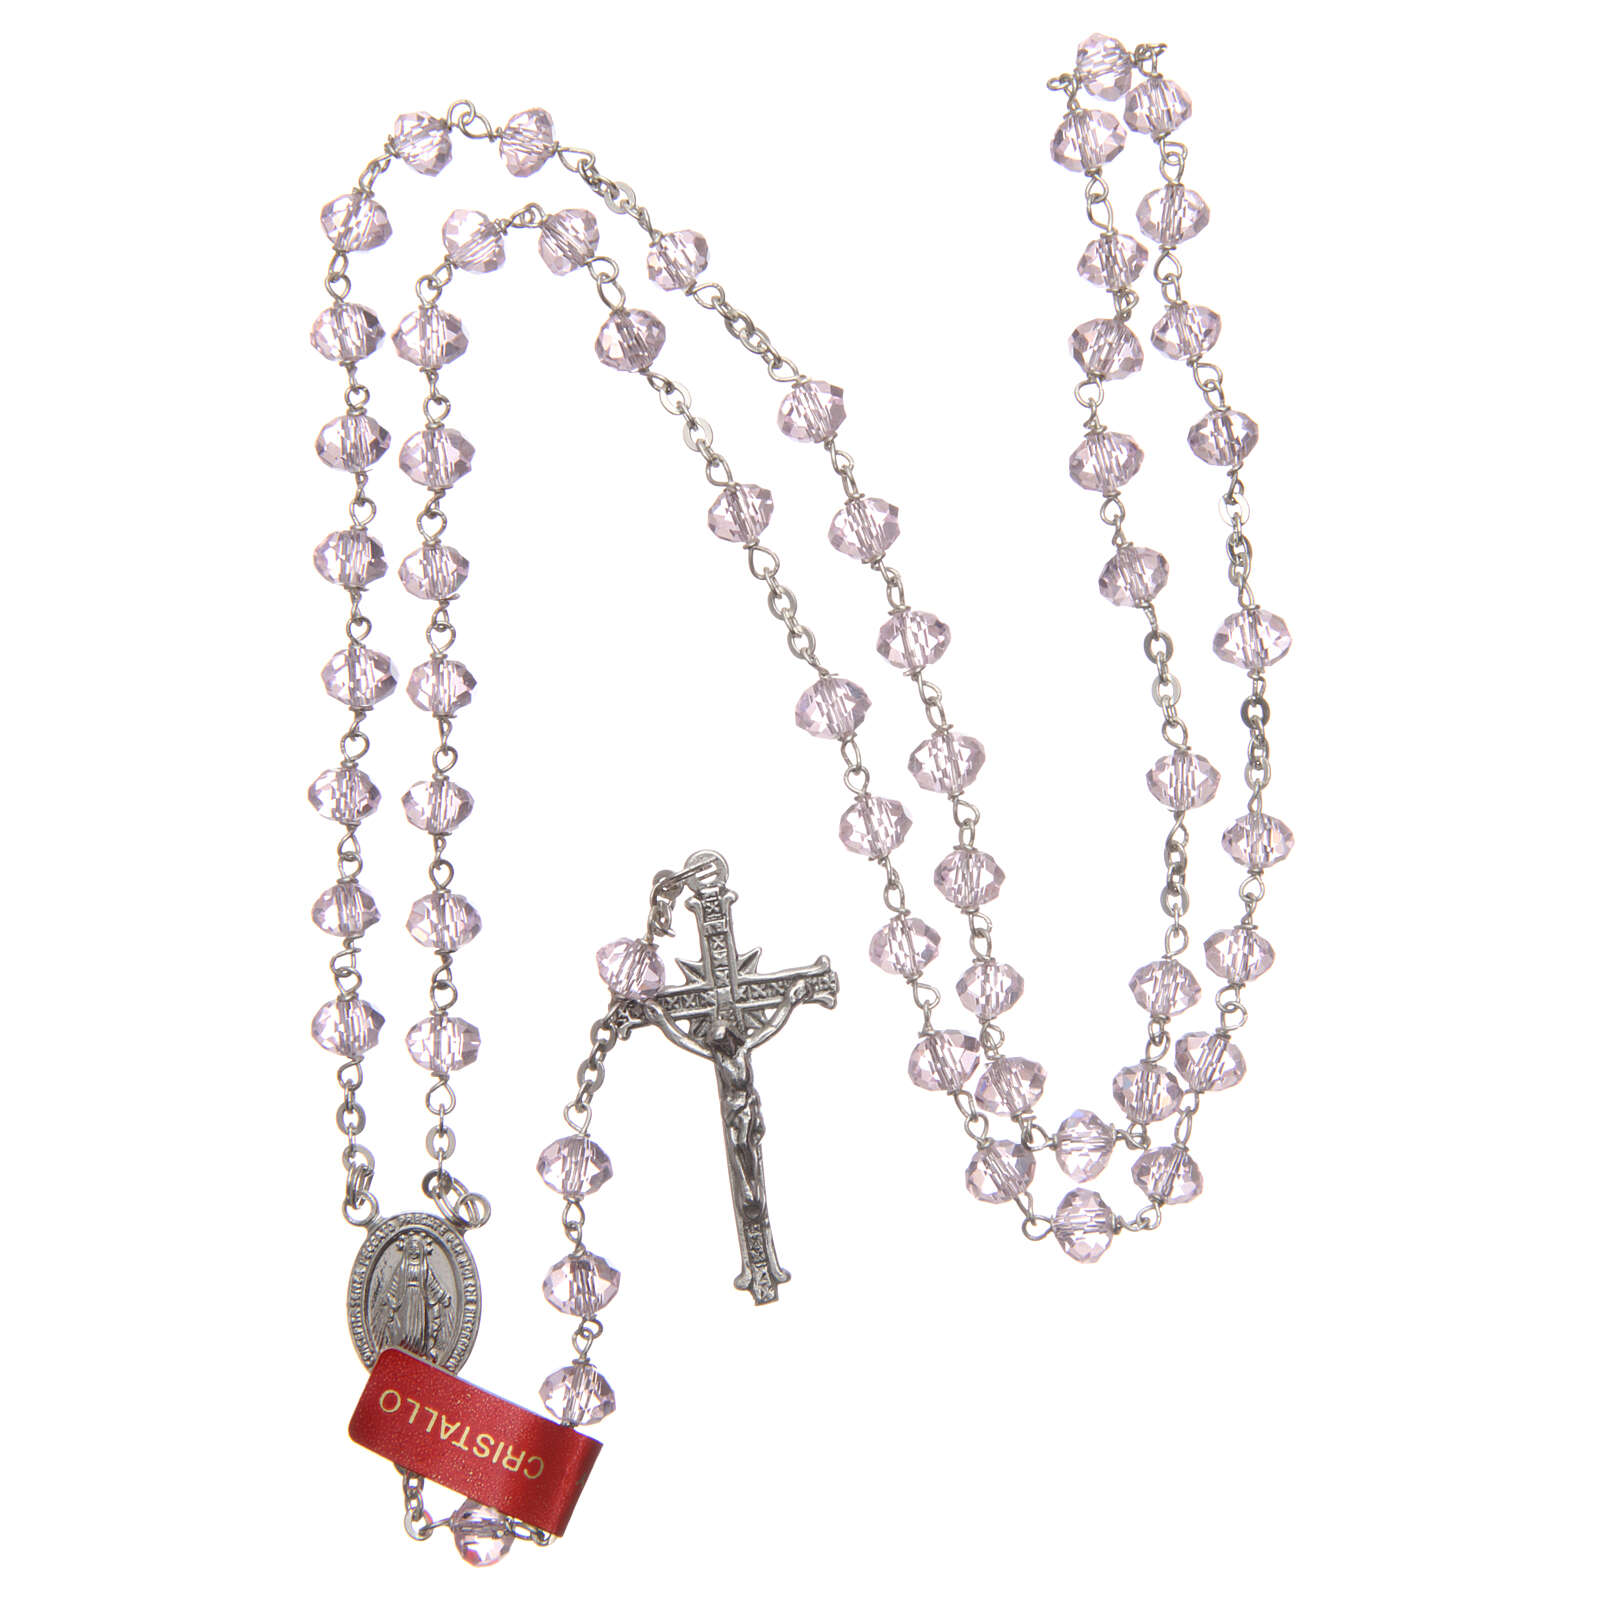 Crystal rosary pink beads 6 mm 925 silver chain 4